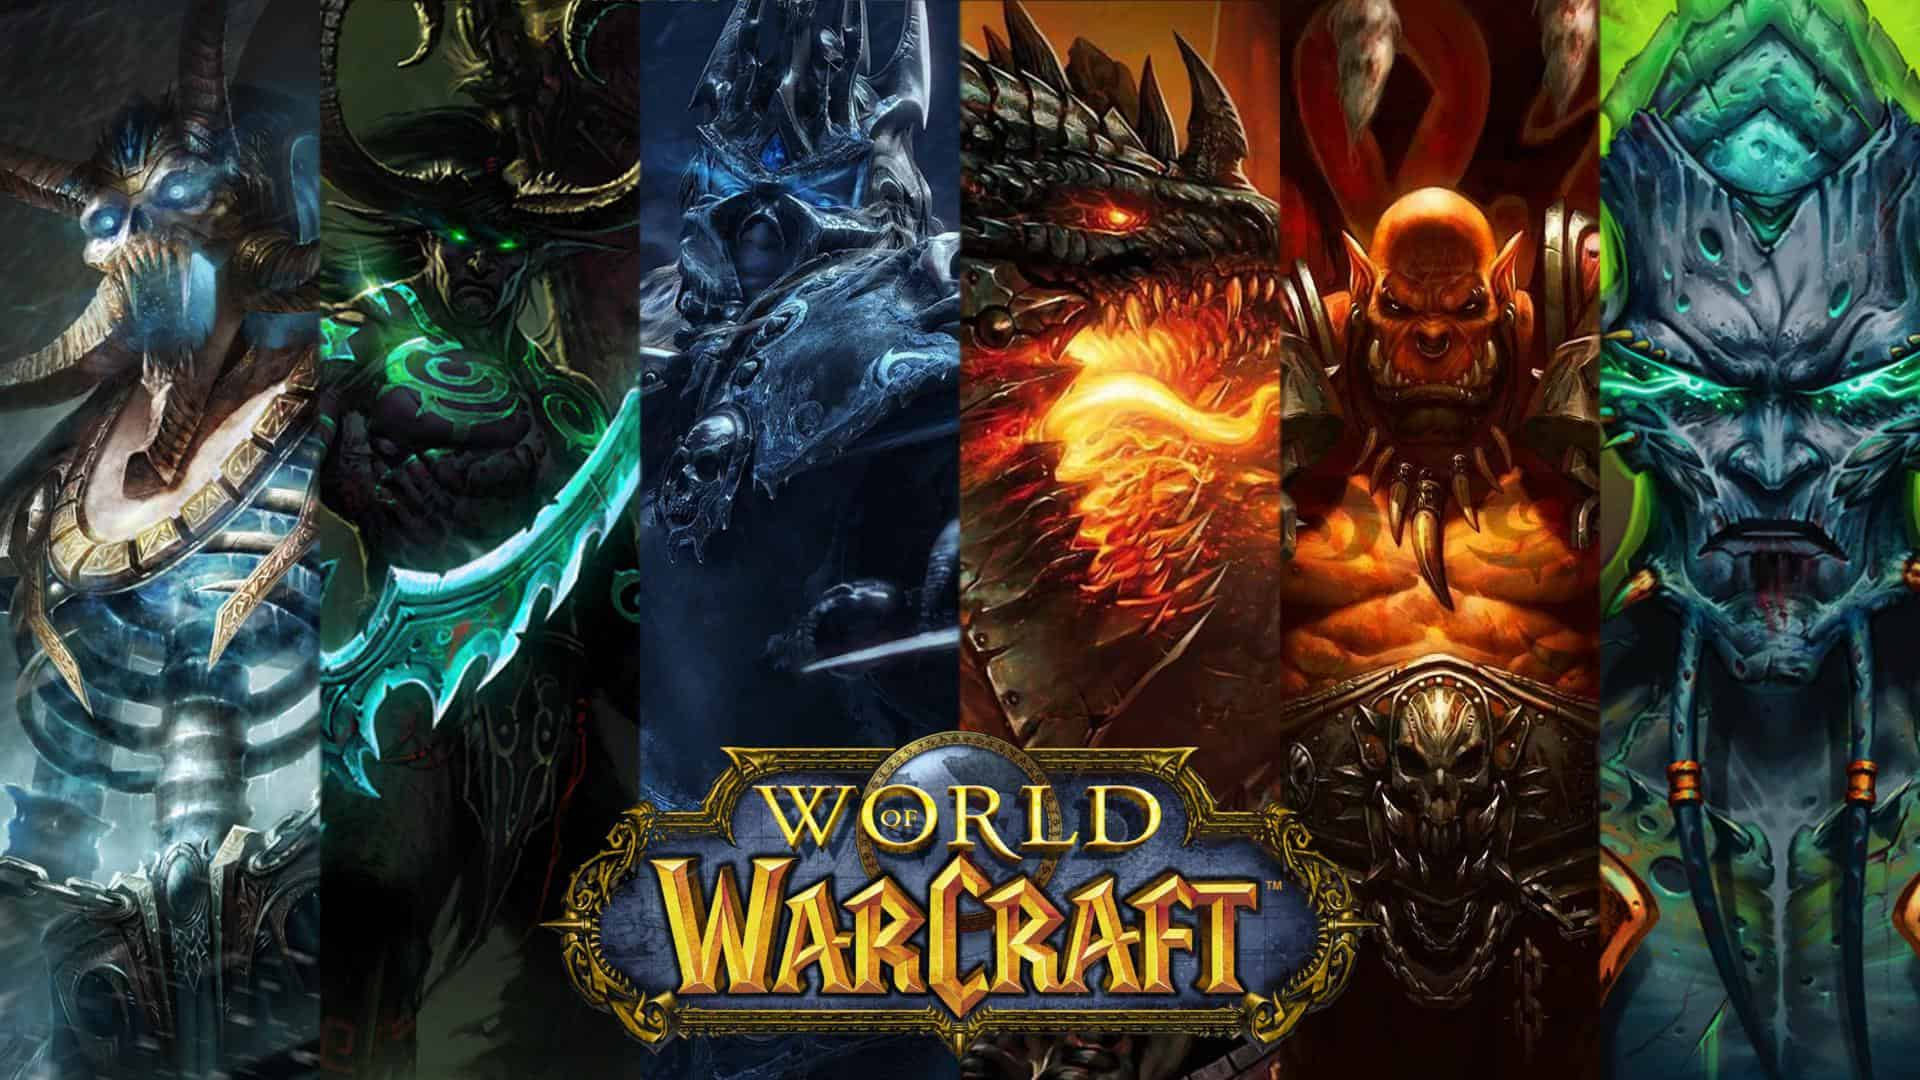 world of warcraft subscription now gives access to all previous